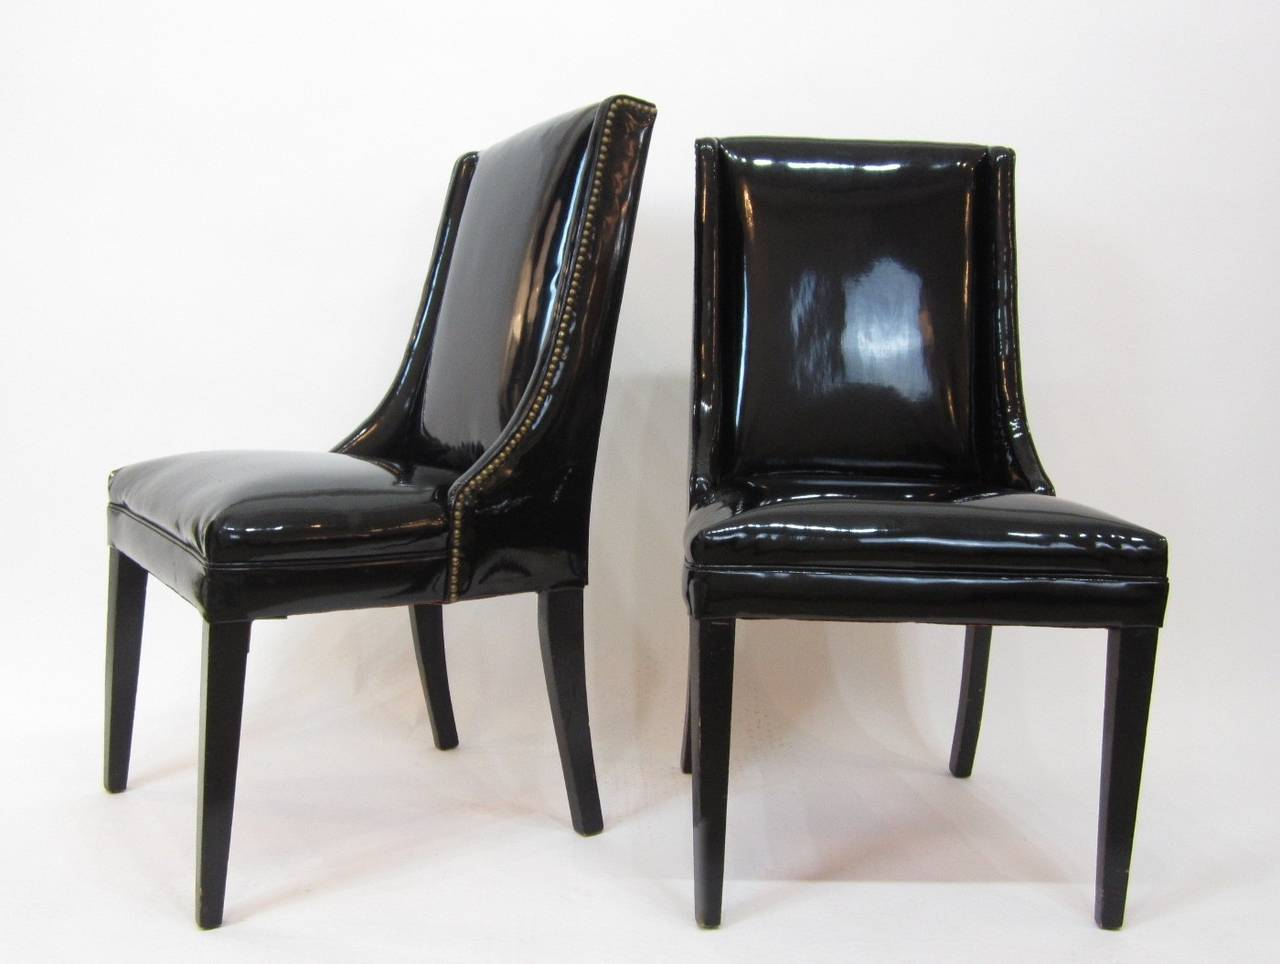 Pair Of Mid Century Patent Leather Chairs With Brass Tacks